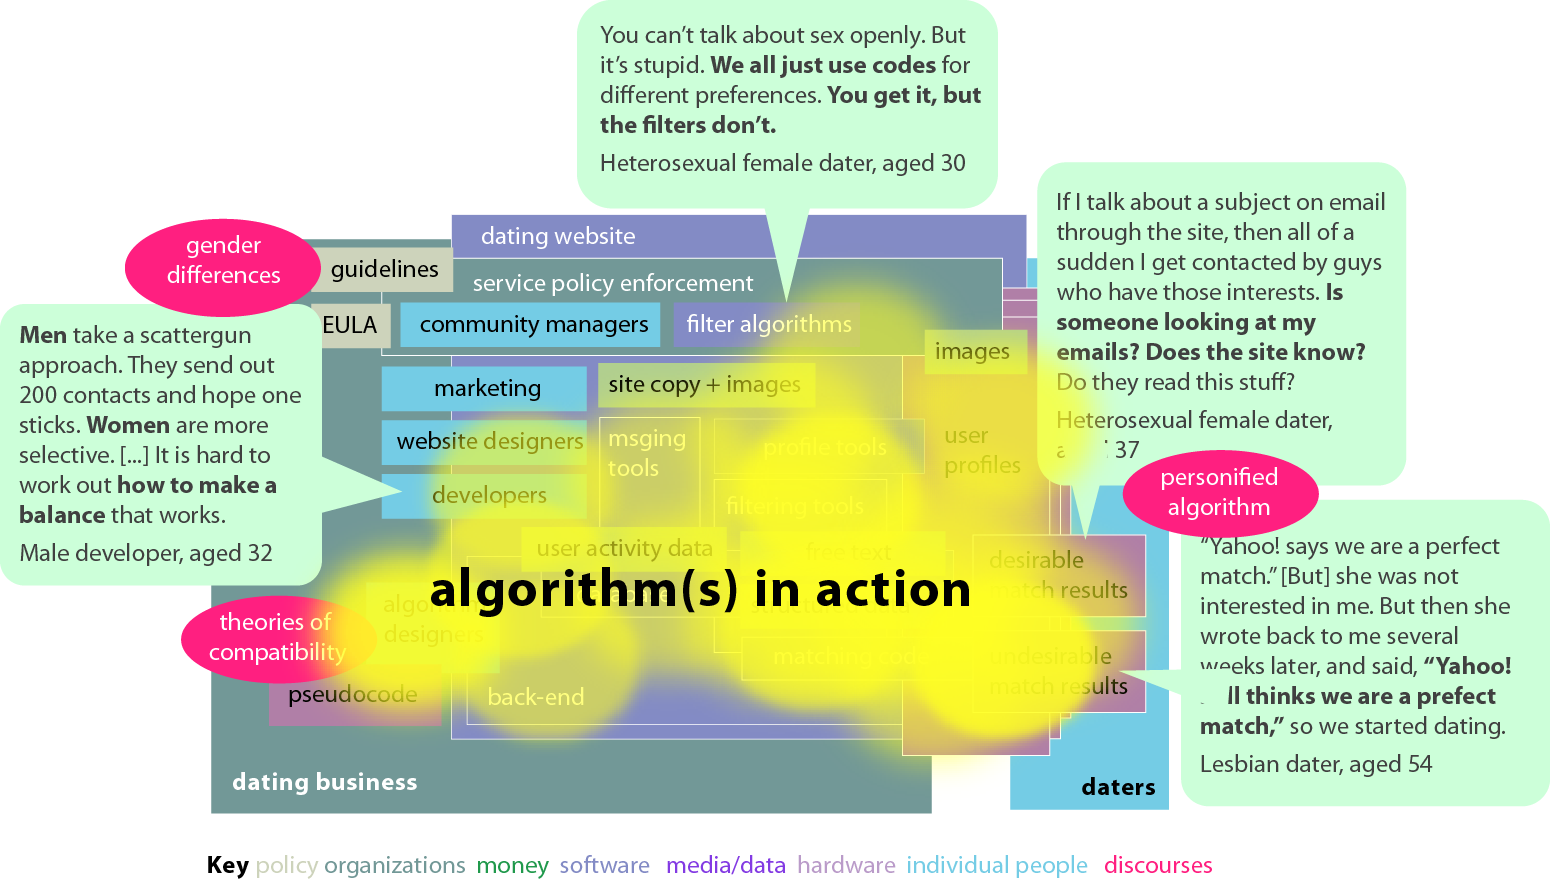 diagram explaining dating algorithms in action